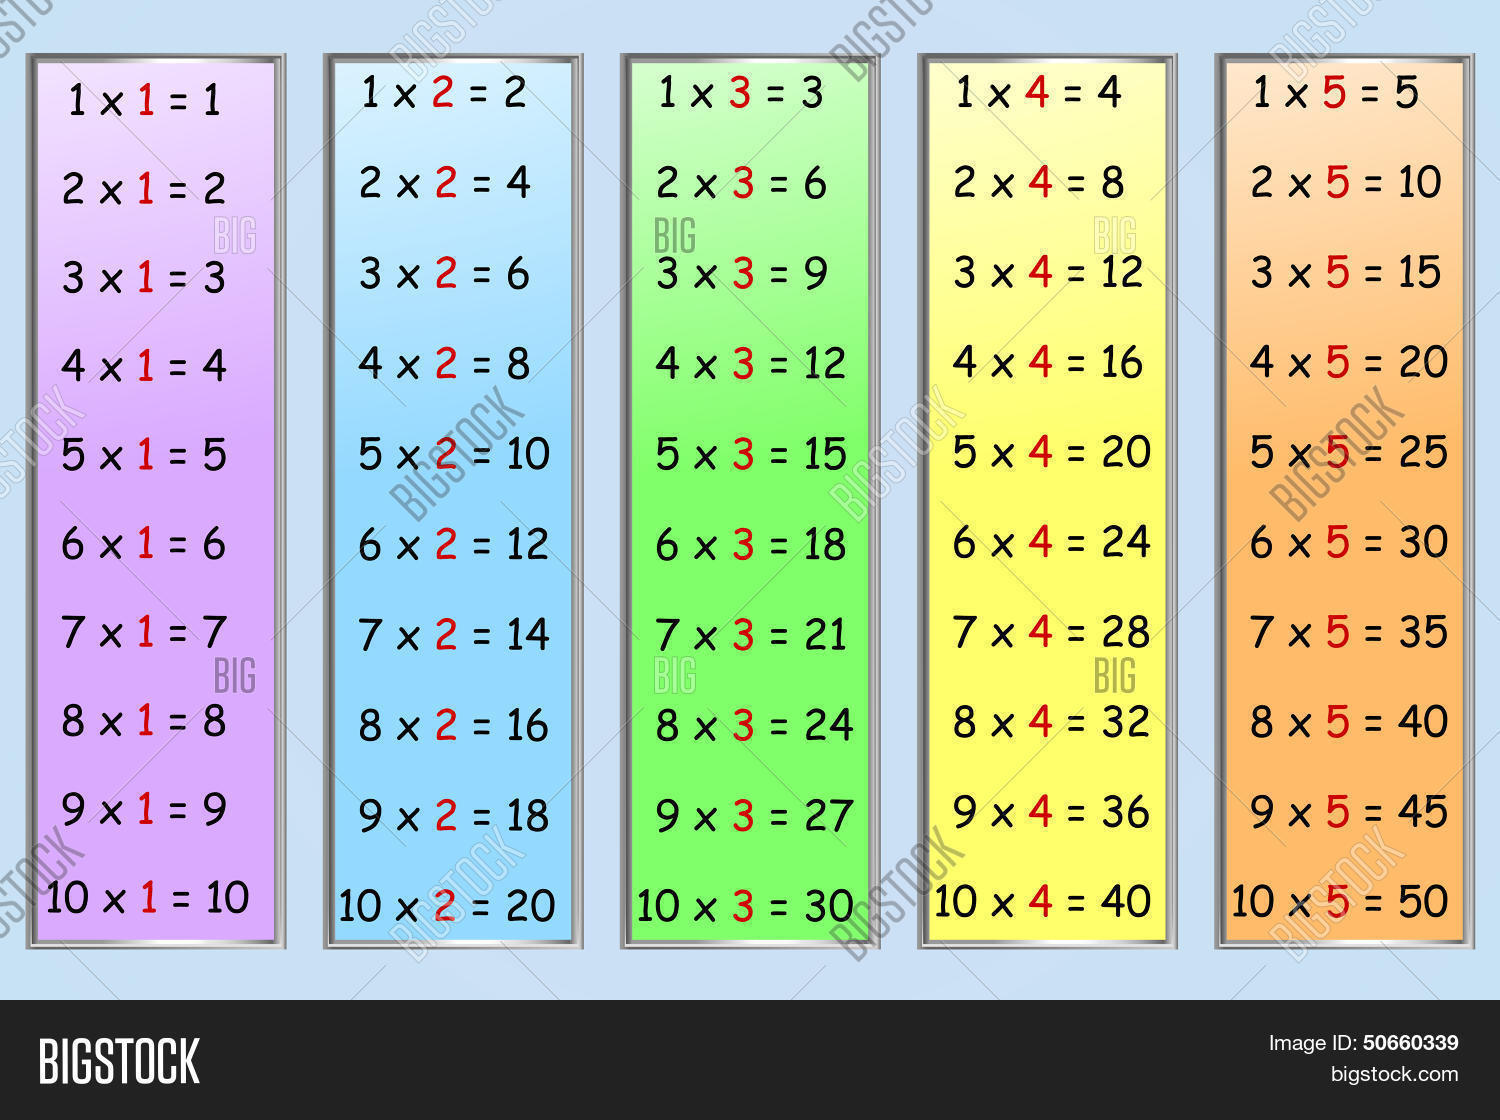 Multiplication table part 1 vector photo bigstock for Table de multiplication 5